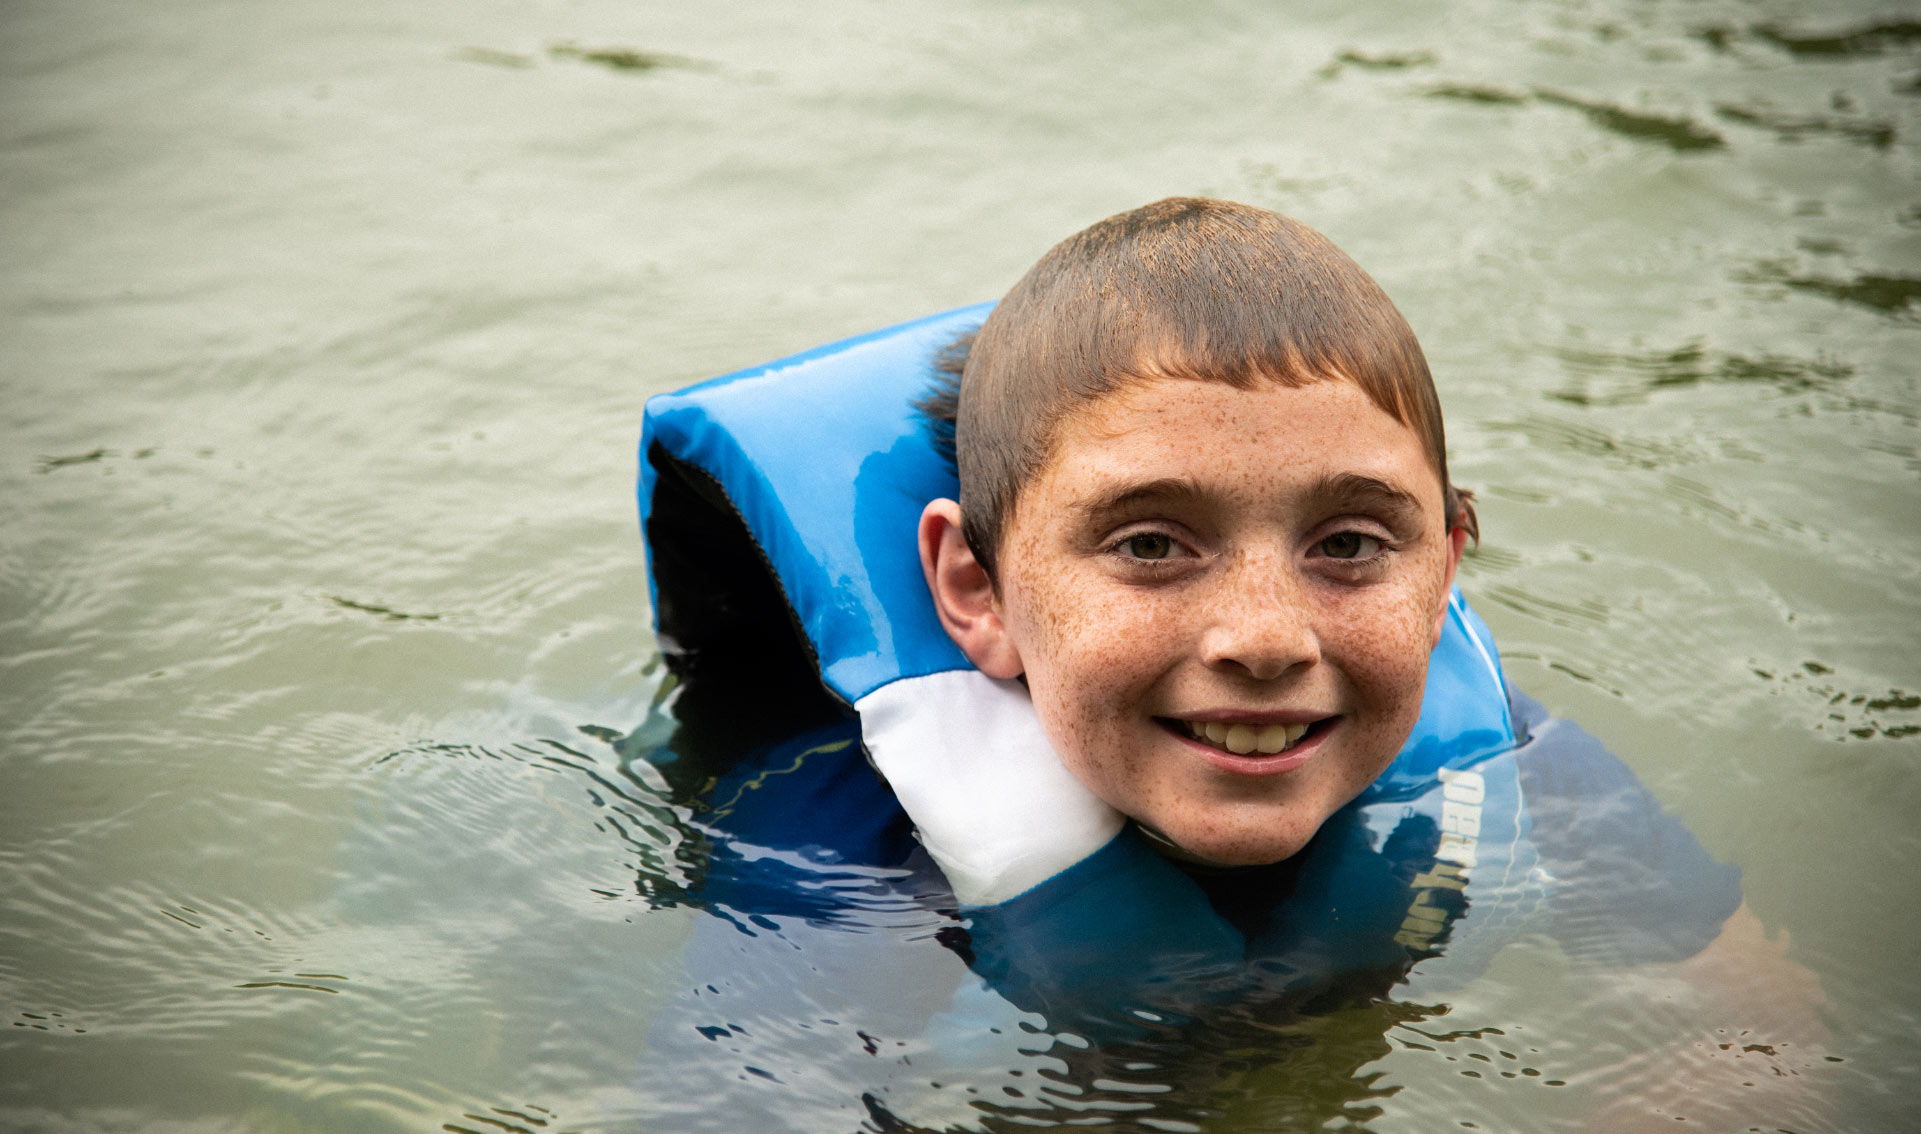 A portrait of Max, wearing a life jacket, floating in the lake. His hair is wet and he's smiling.